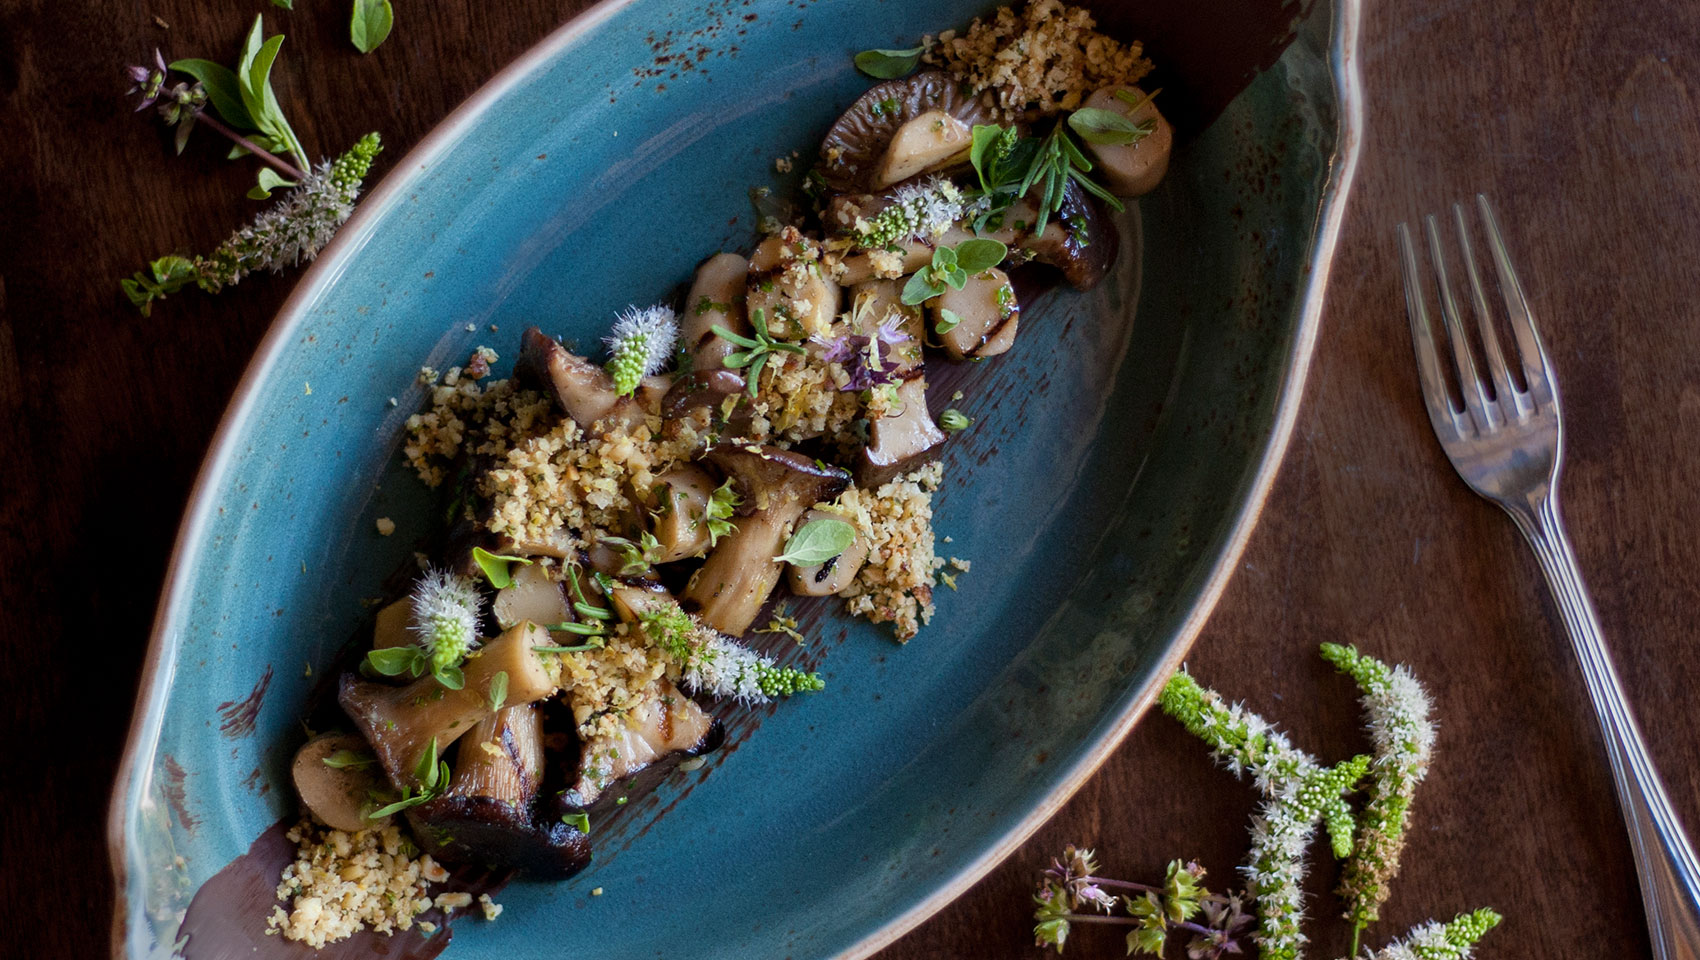 Double Take's oyster-mushrooms